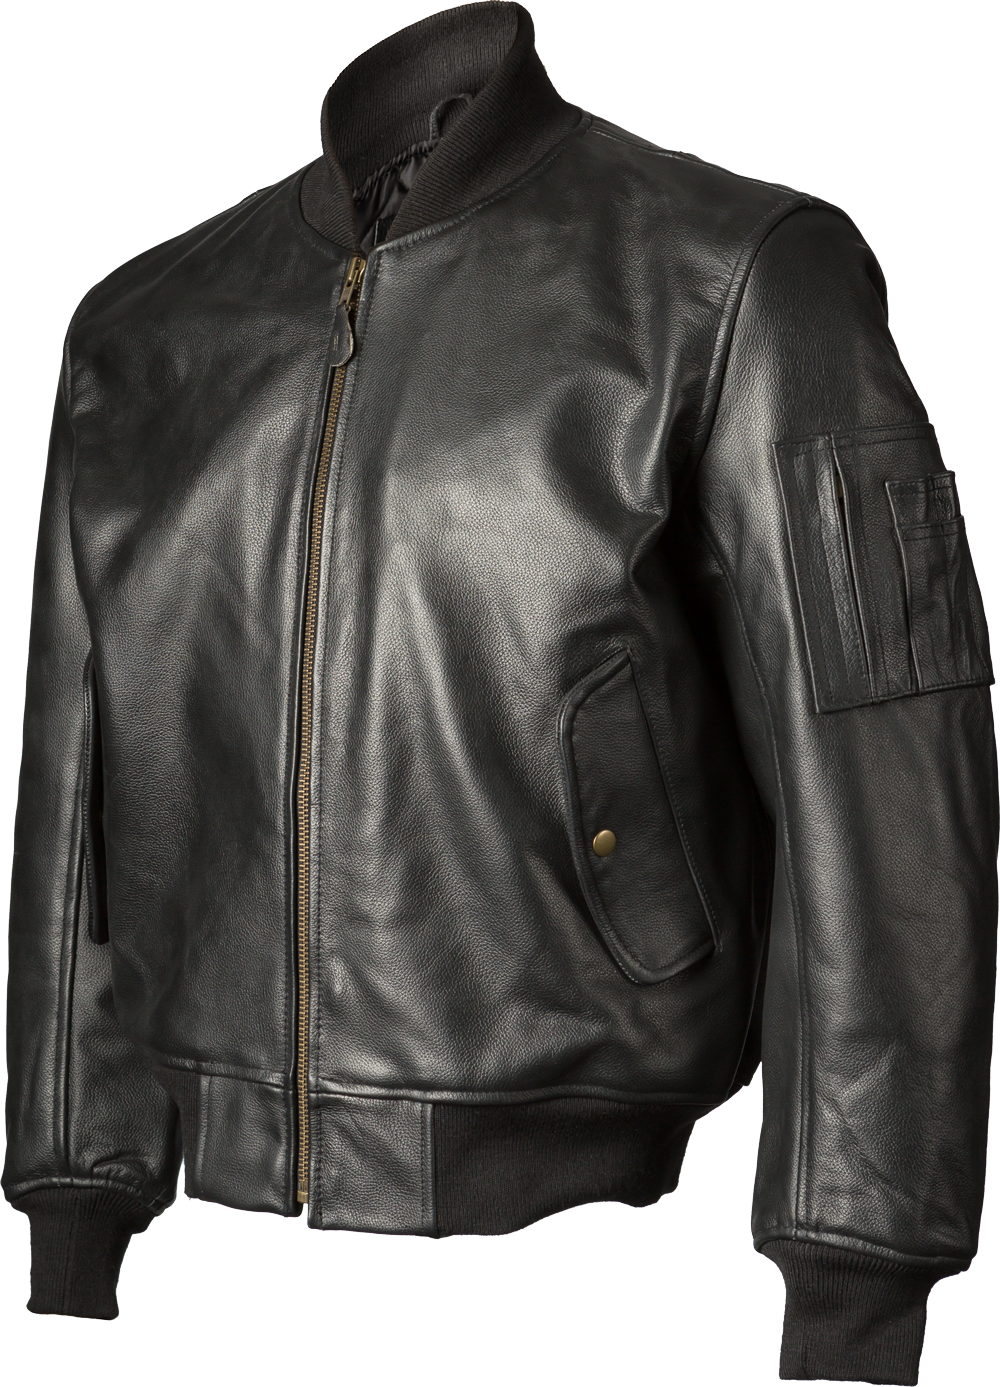 Clip button metal jacket. John ownbey leather ma